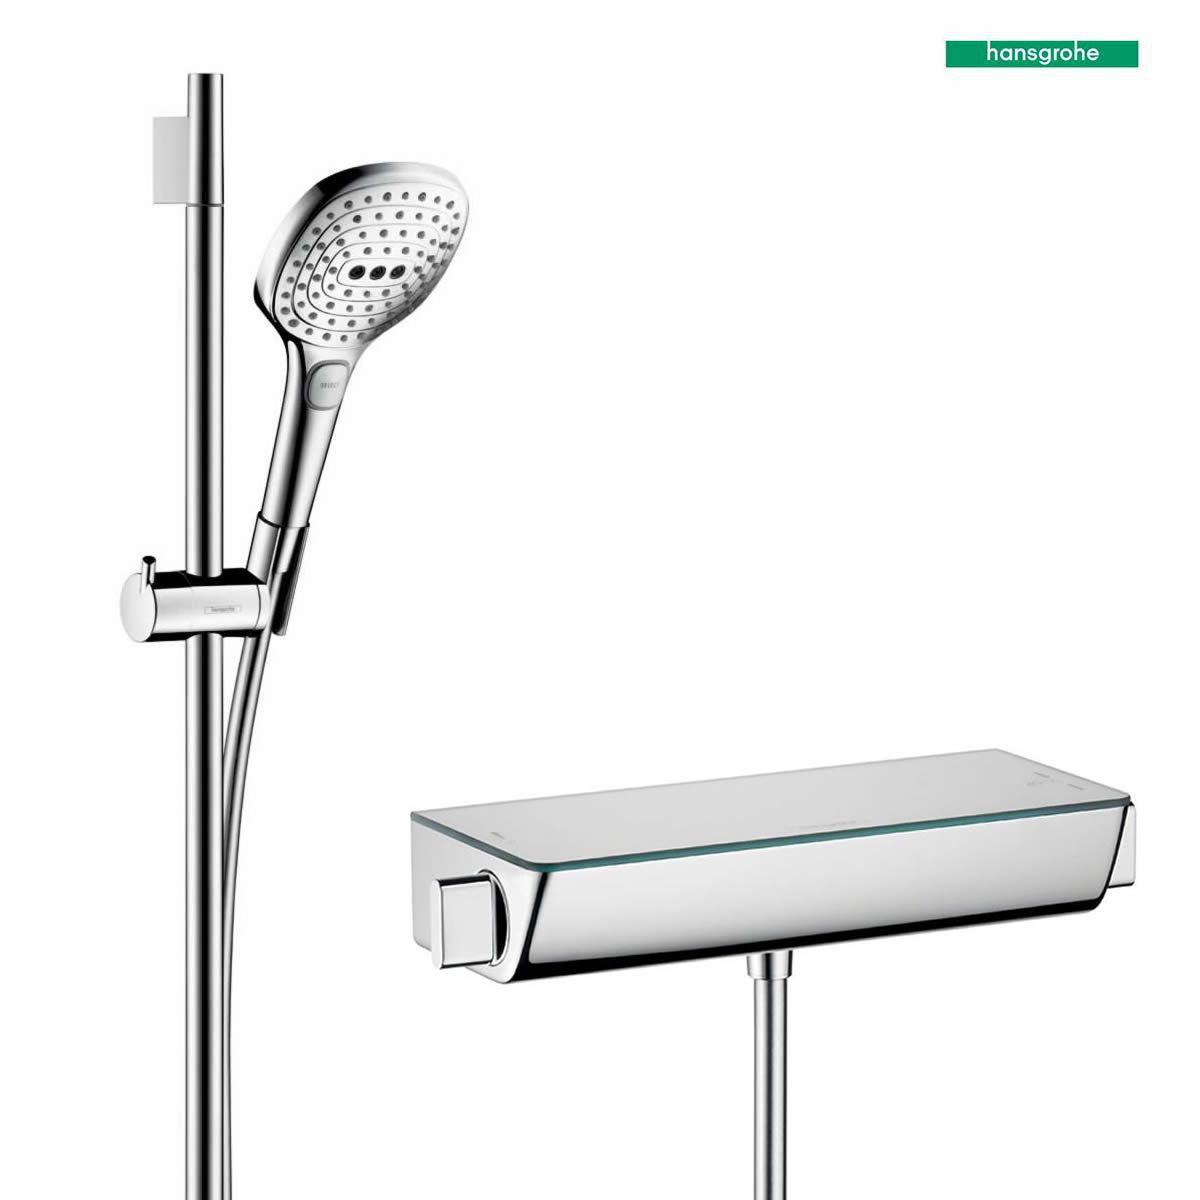 hansgrohe ecostat select with raindance e 120 3jet hand shower uk bathrooms. Black Bedroom Furniture Sets. Home Design Ideas